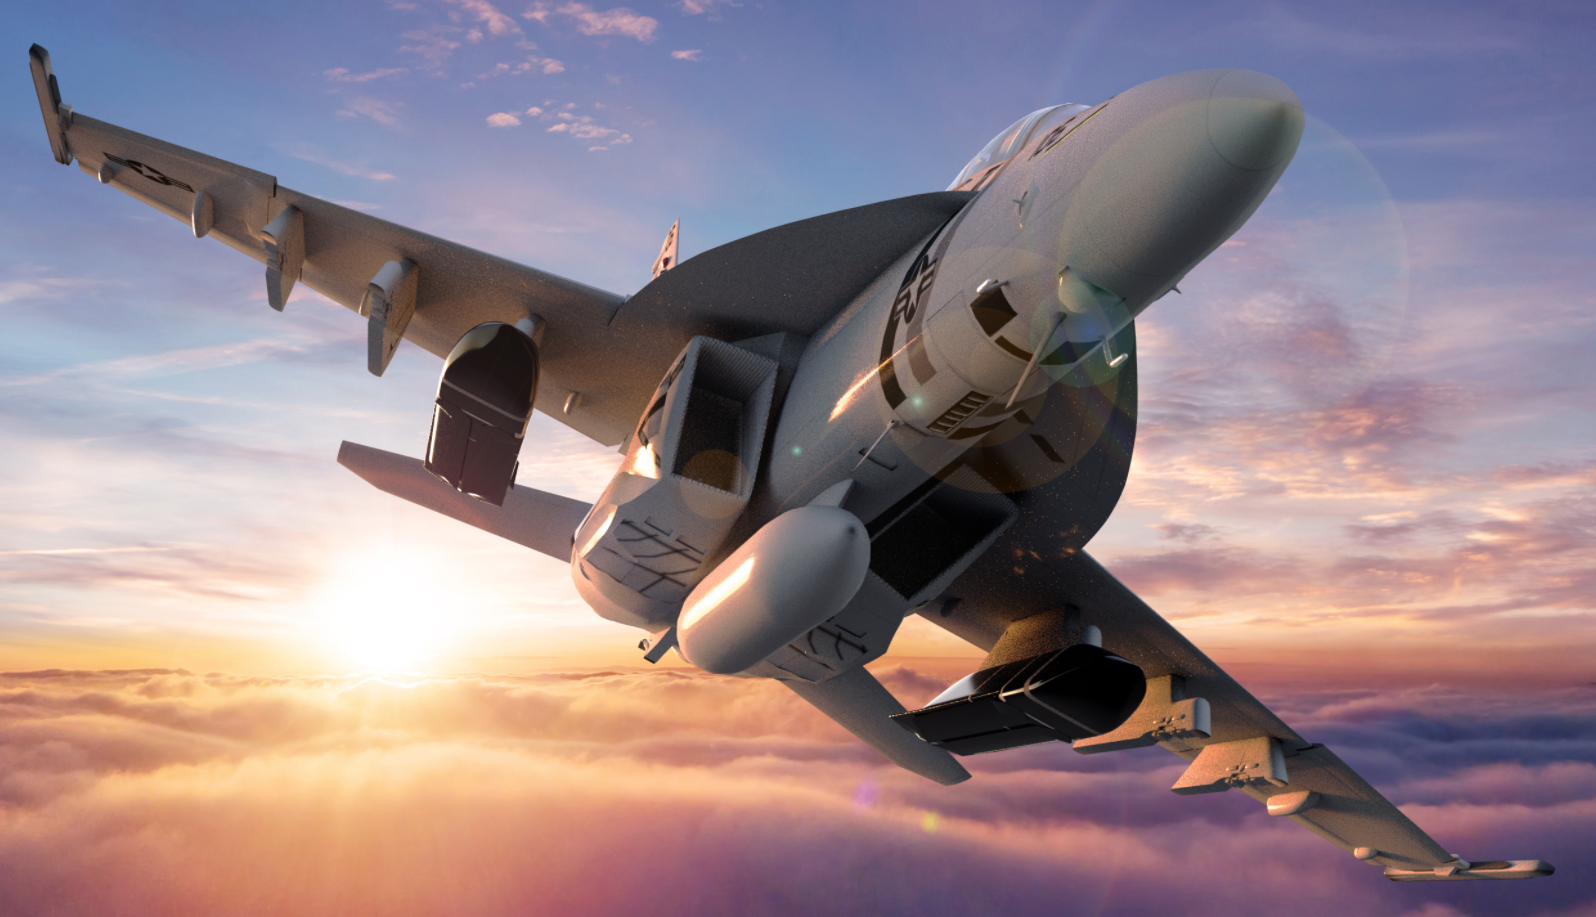 BAE Systems Continues Advanced Seeker Production for Next-Generation Precision-Guided Missile